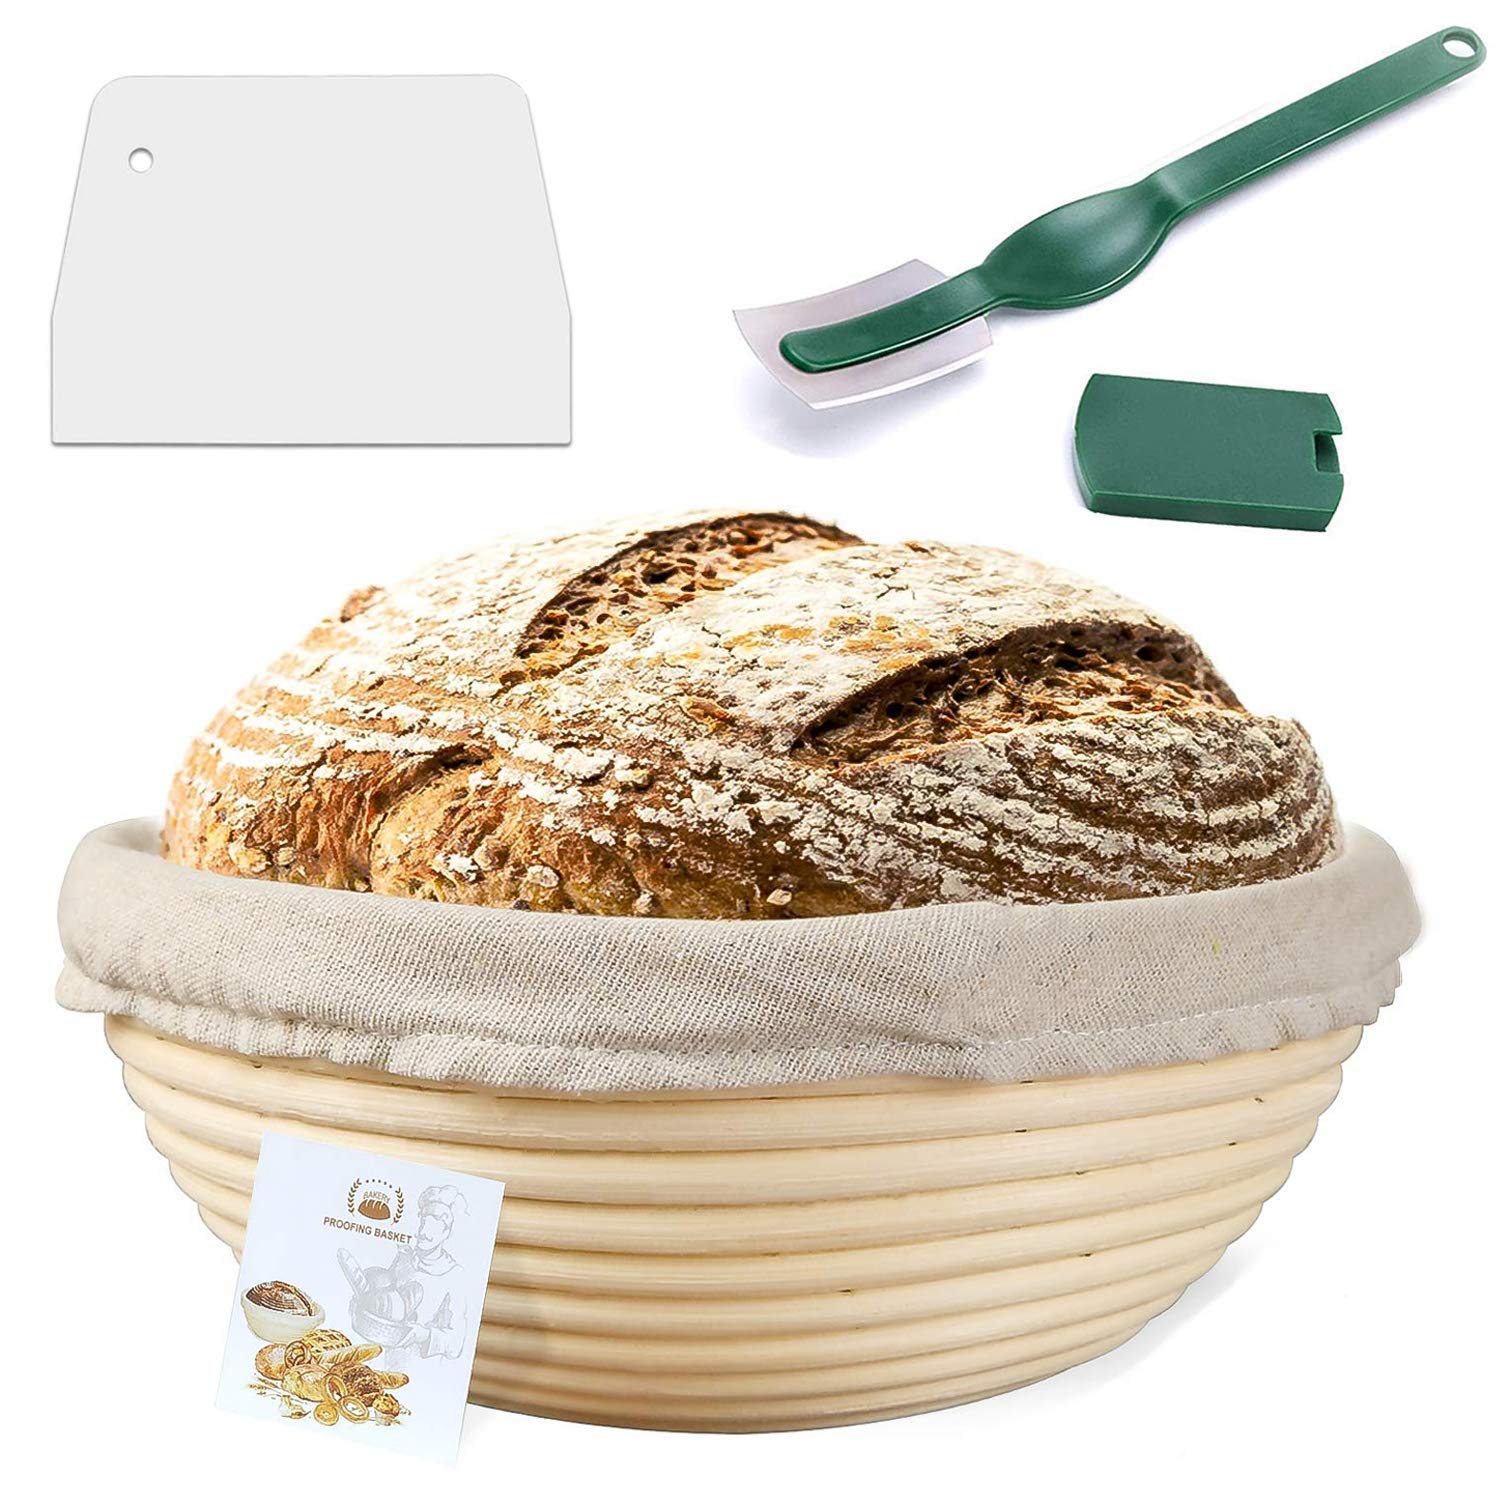 9 Inch Proofing Basket,WERTIOO Bread Proofing Basket + Bread Lame +Dough Scraper+ Linen Liner Cloth for Professional & Home Bakers by WERTIOO